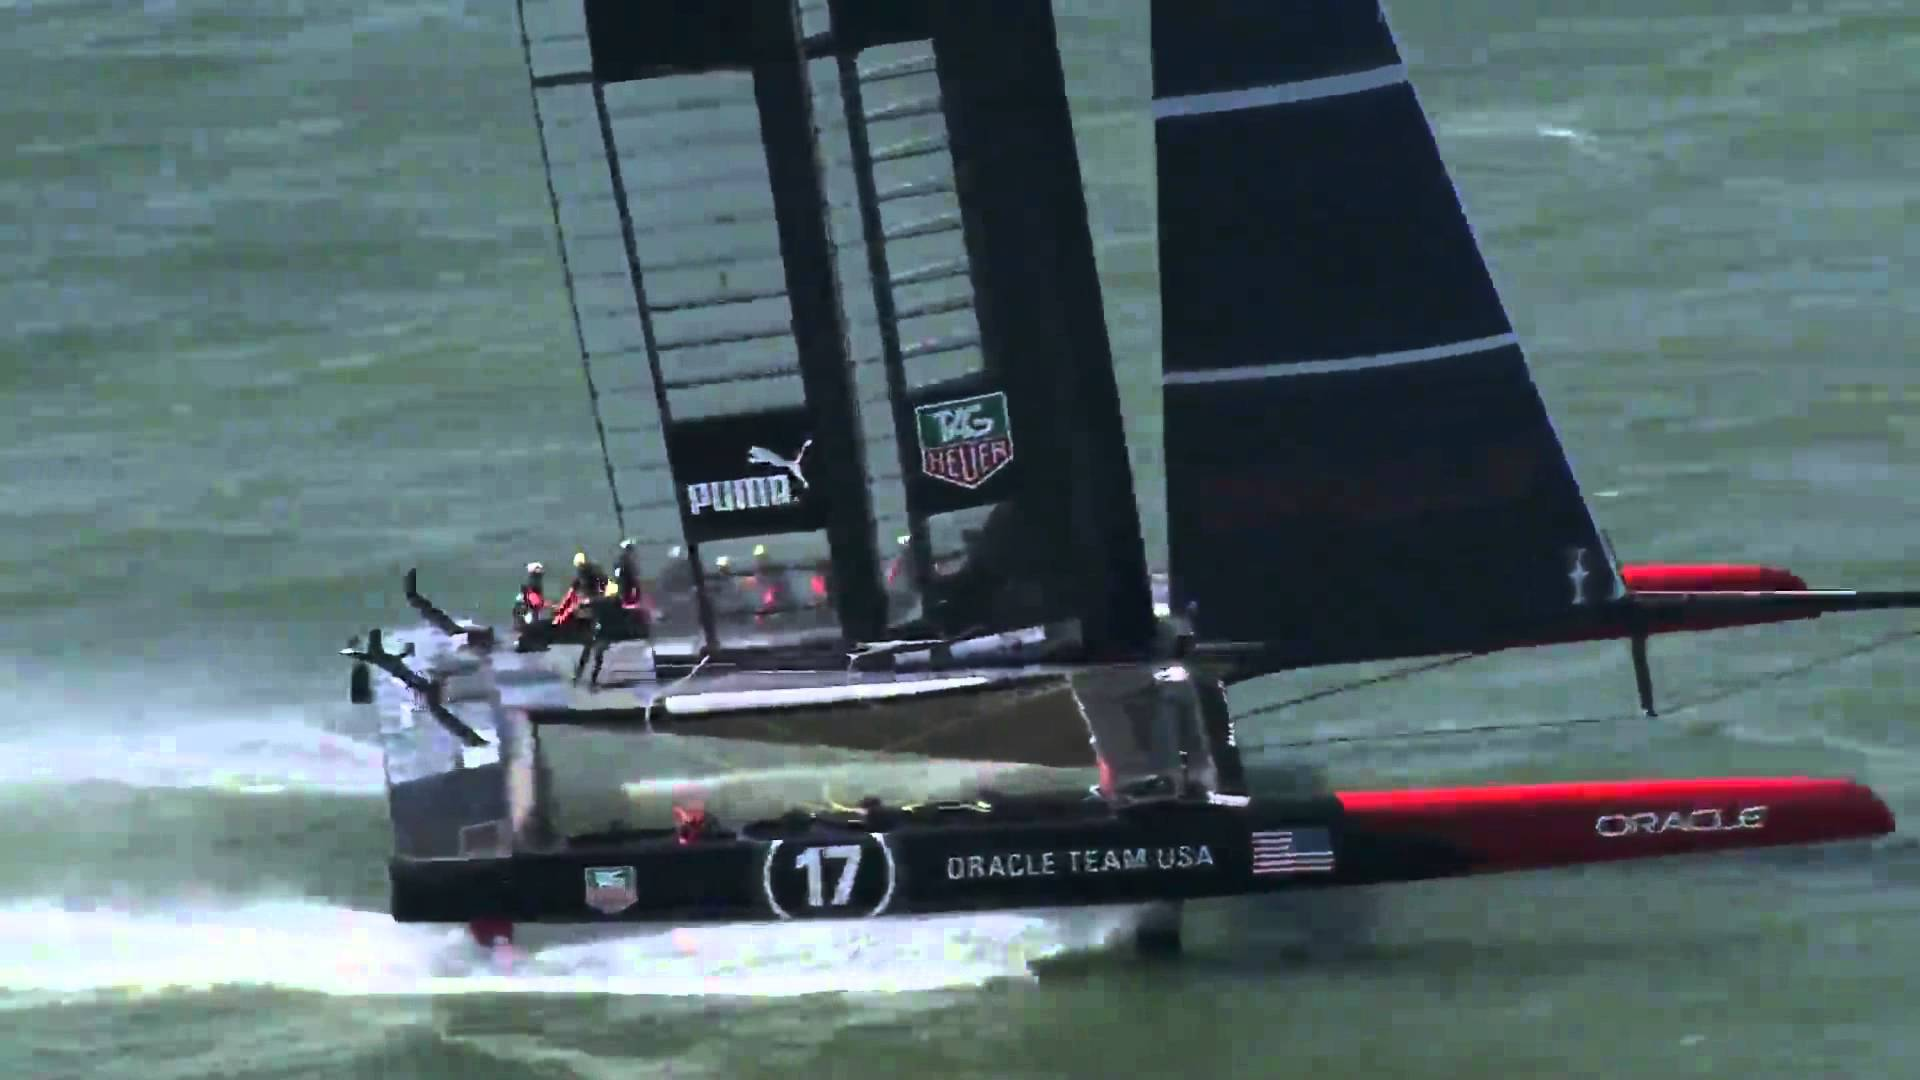 Fresh to Frightening Crashing Moments at the 34th Americas Cup. 2